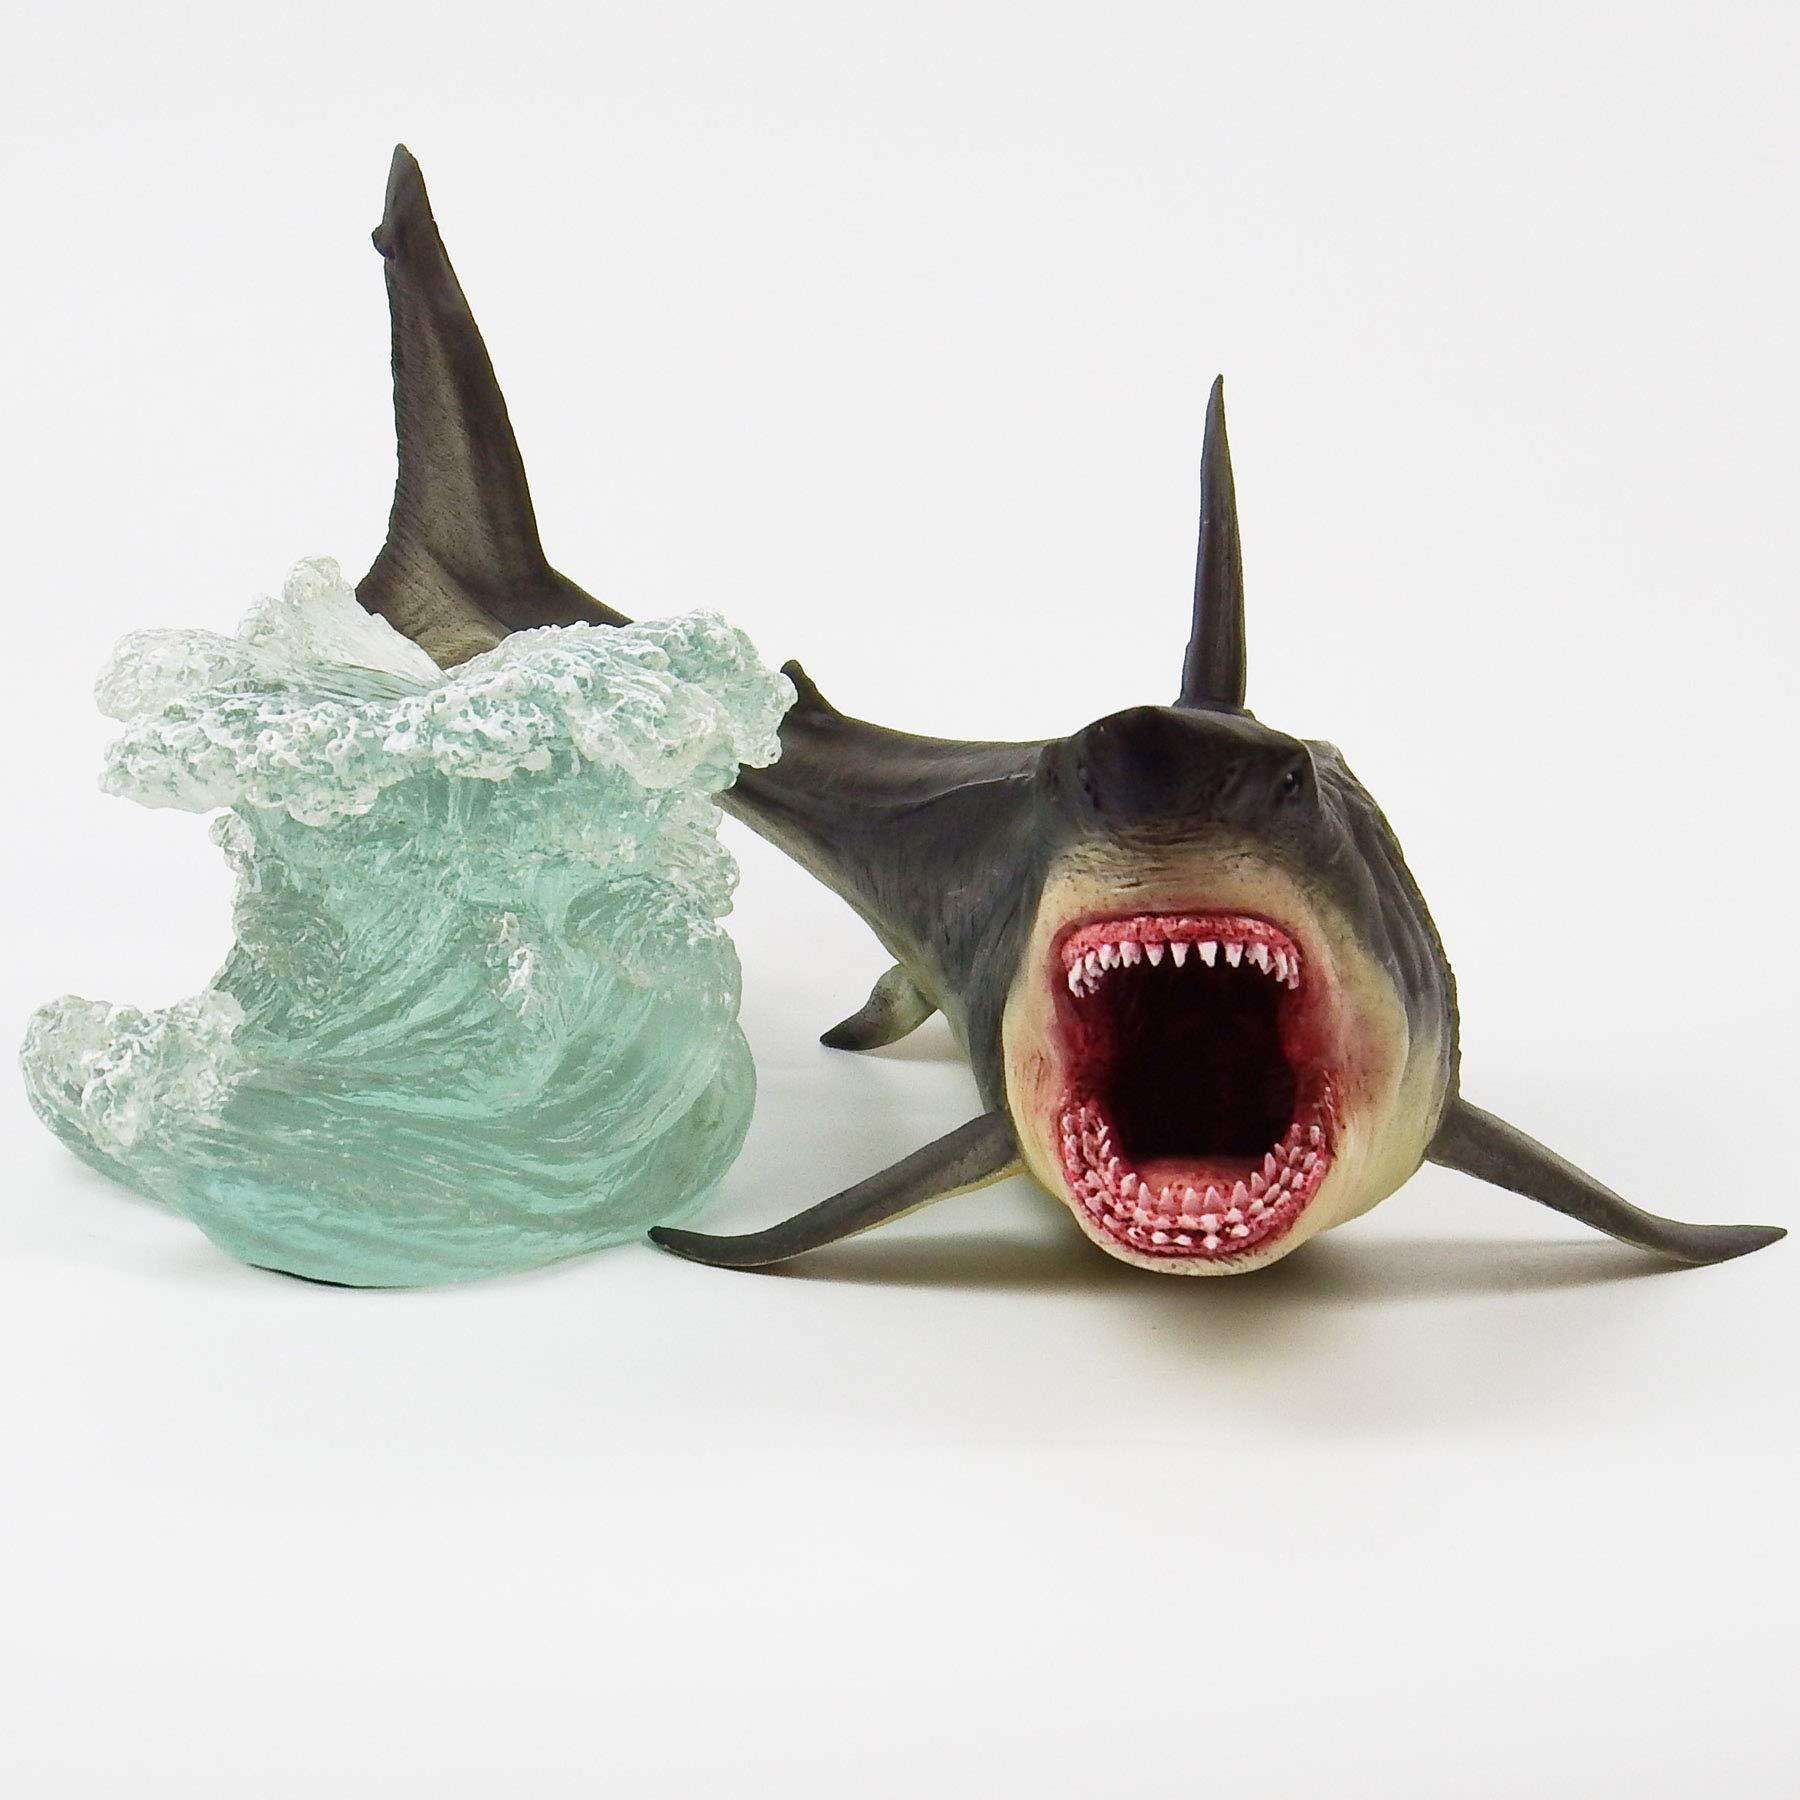 Megalodon Toy Shark Statue Figurine The MEG Paleontology Collectibles Oceanic Nautical Display by GemShark Collectiobles (Image #5)